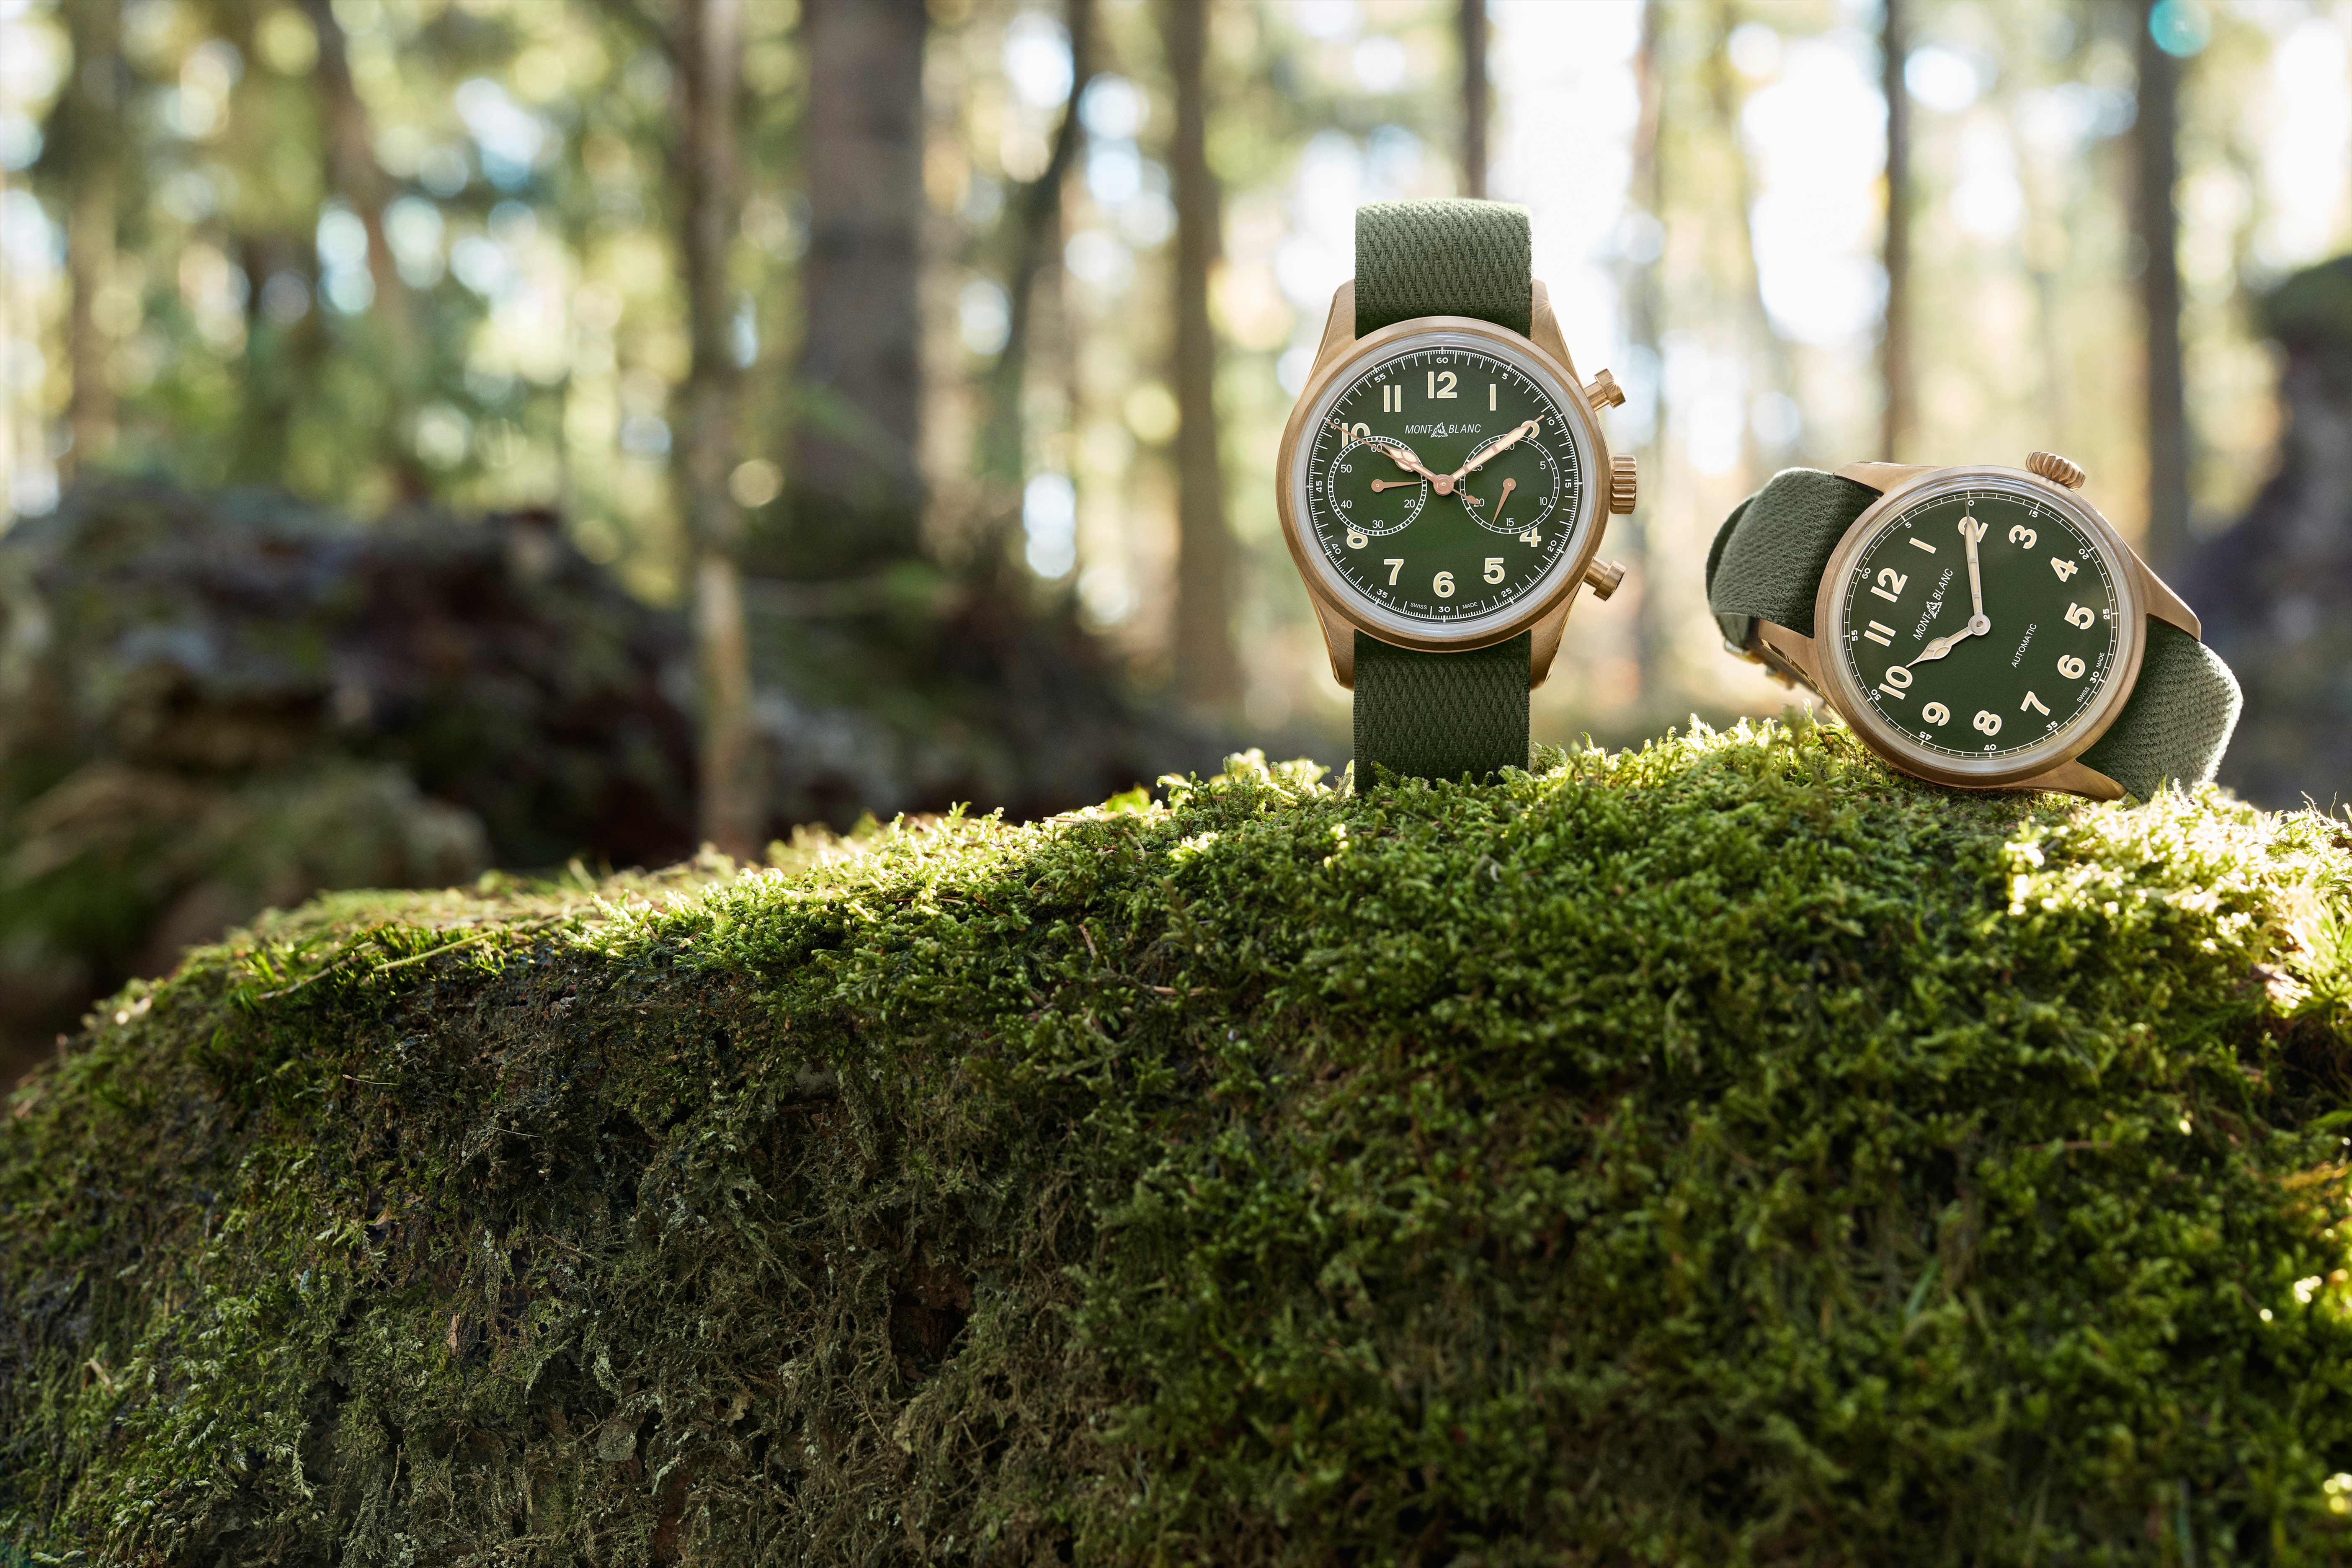 Montblanc's new nature inspired 1858 collection